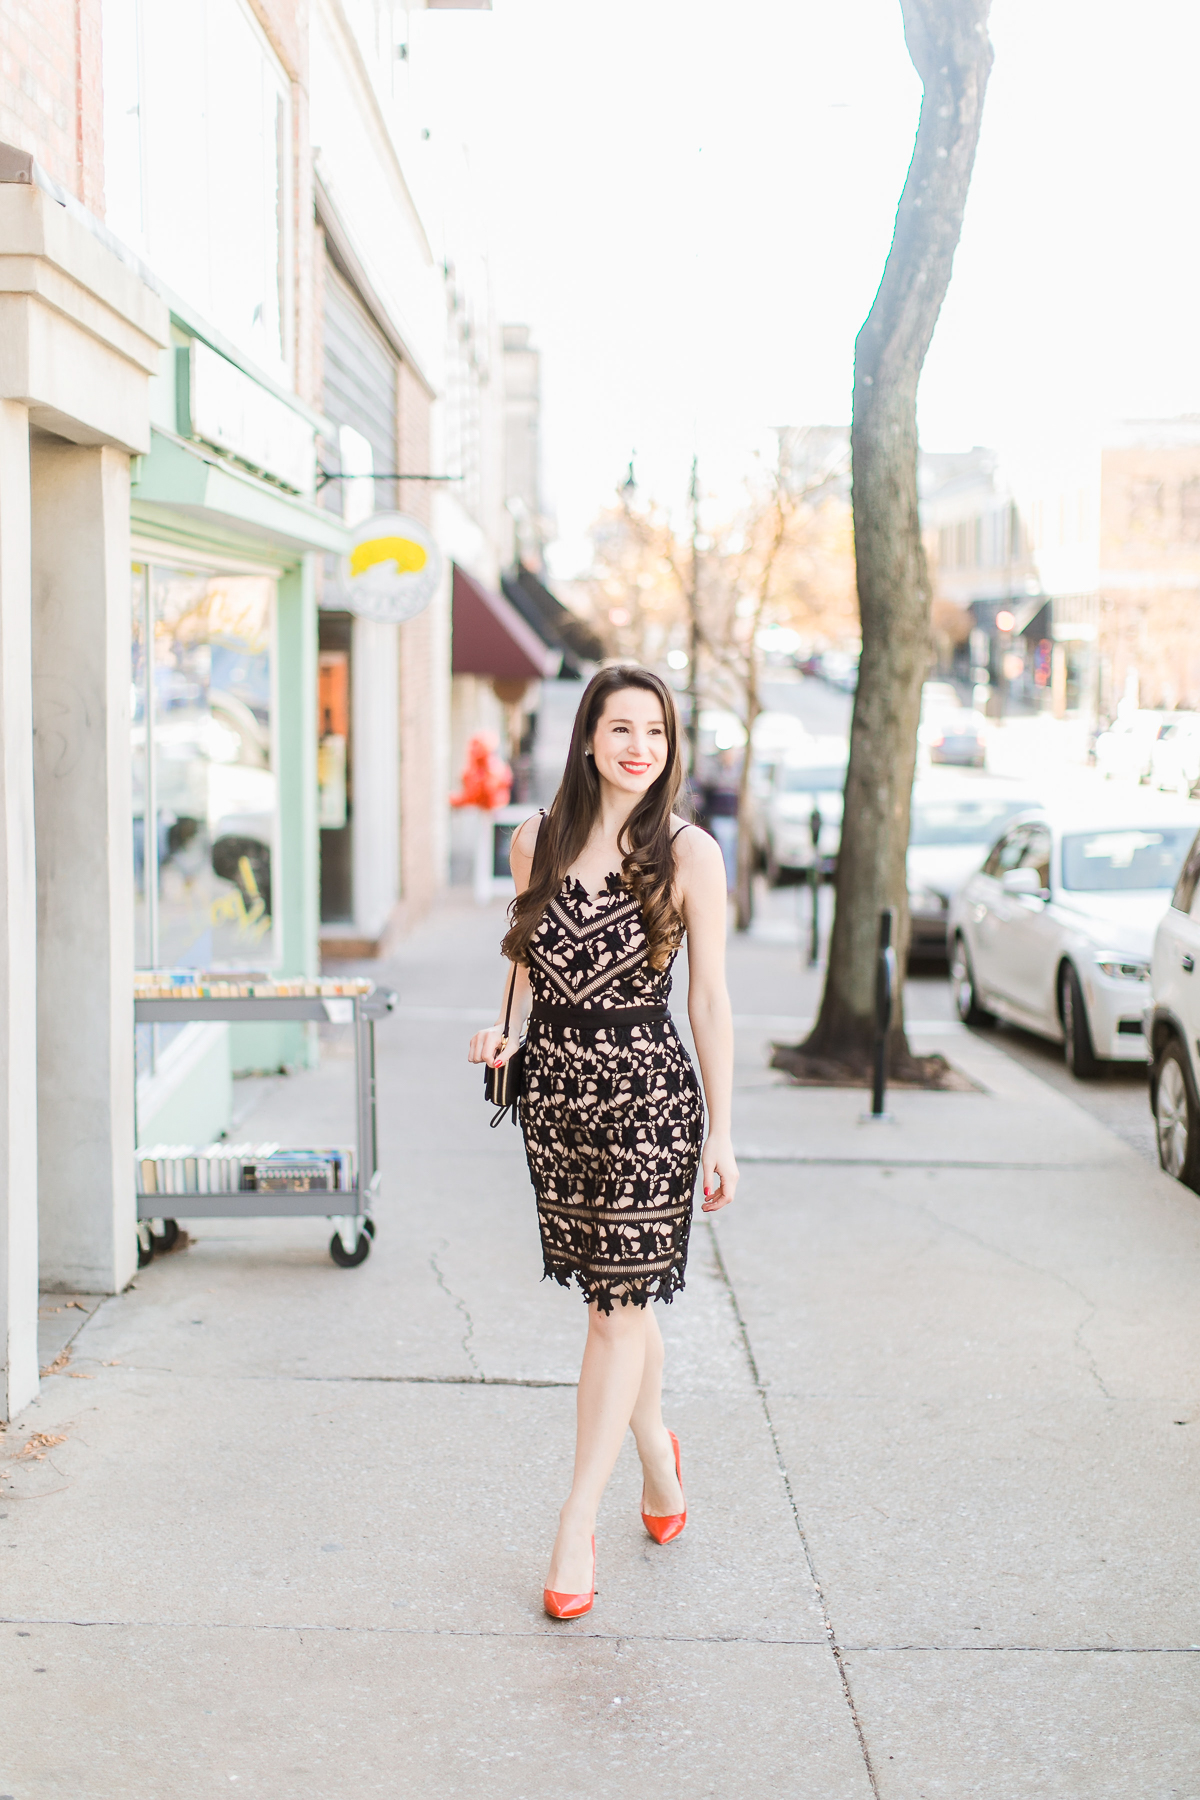 Adelyn Rae Whitney dress styled with a Vera Bradley RFID All-in-One Crossbody and Sam Edelman red patent leather pumps by southern fashion blogger Stephanie Ziajka from Diary of a Debutante